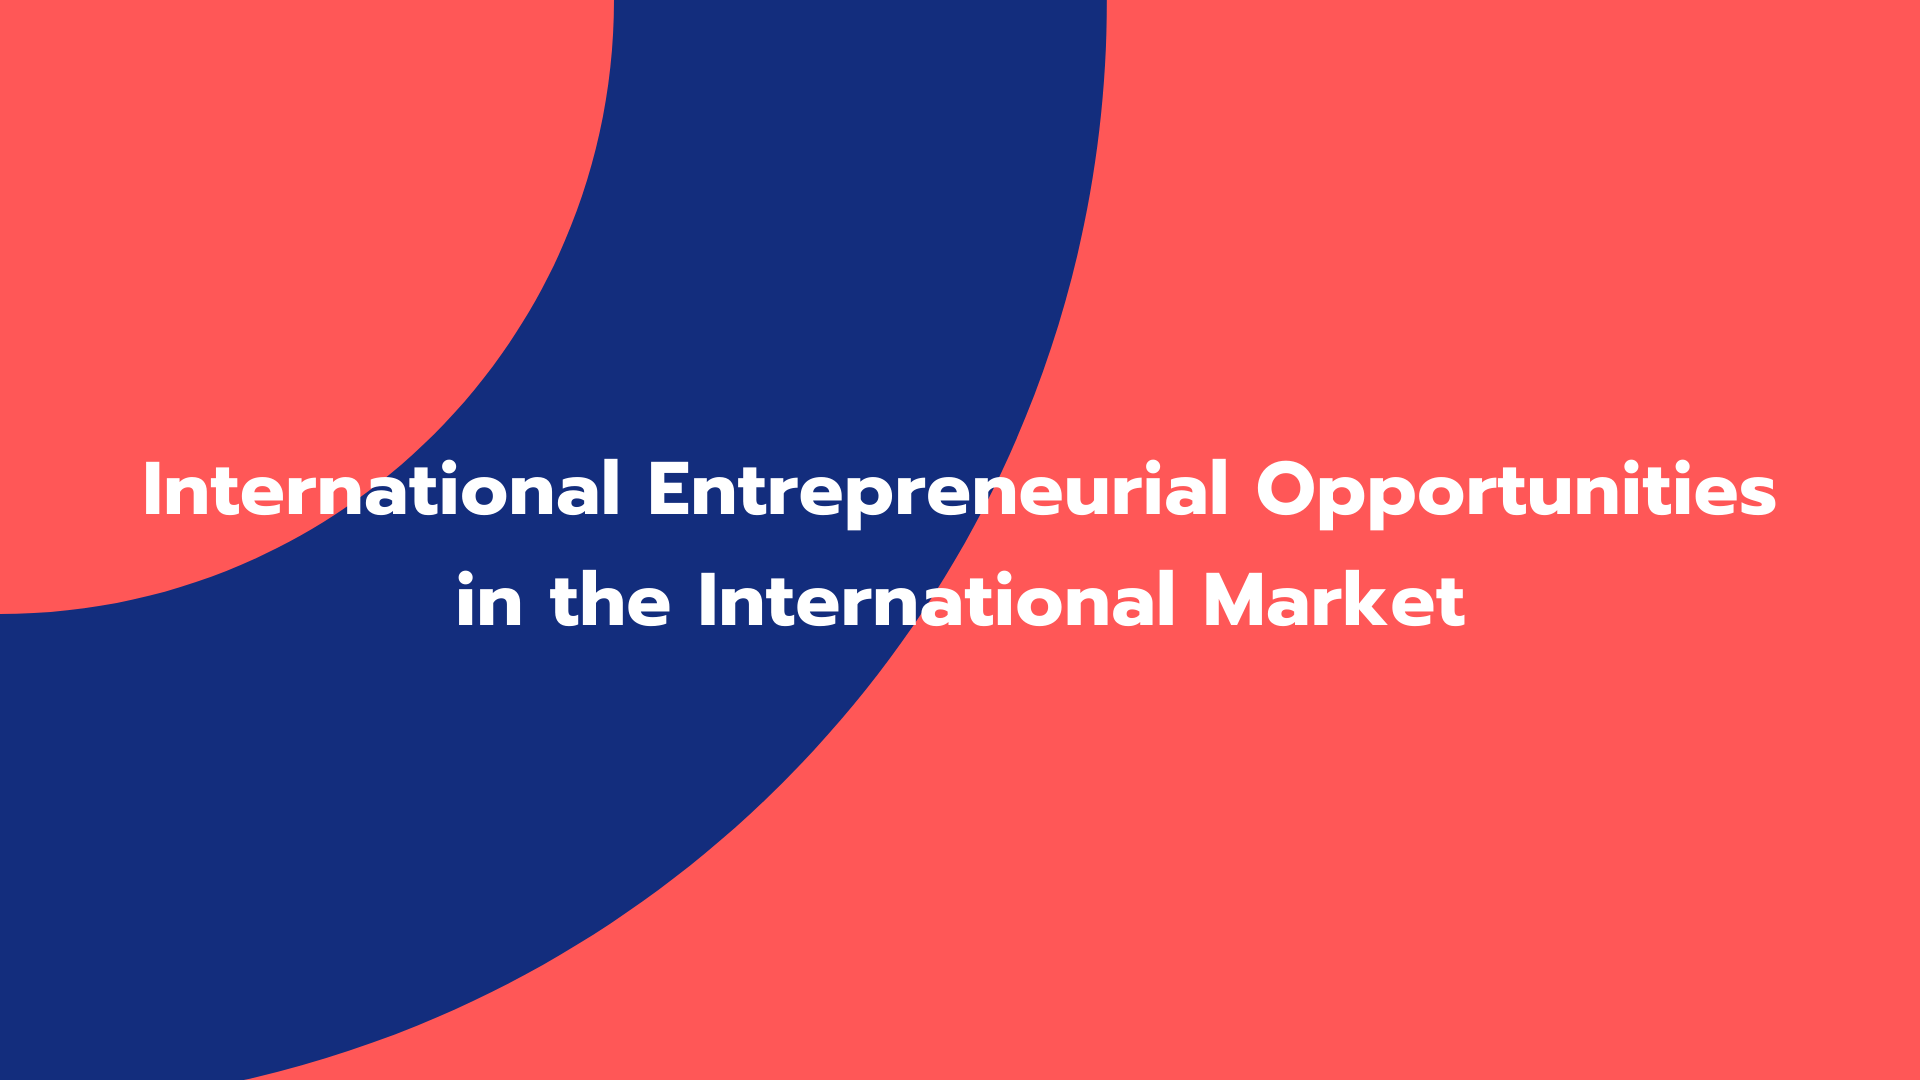 International Entrepreneurial Opportunities in the International Market